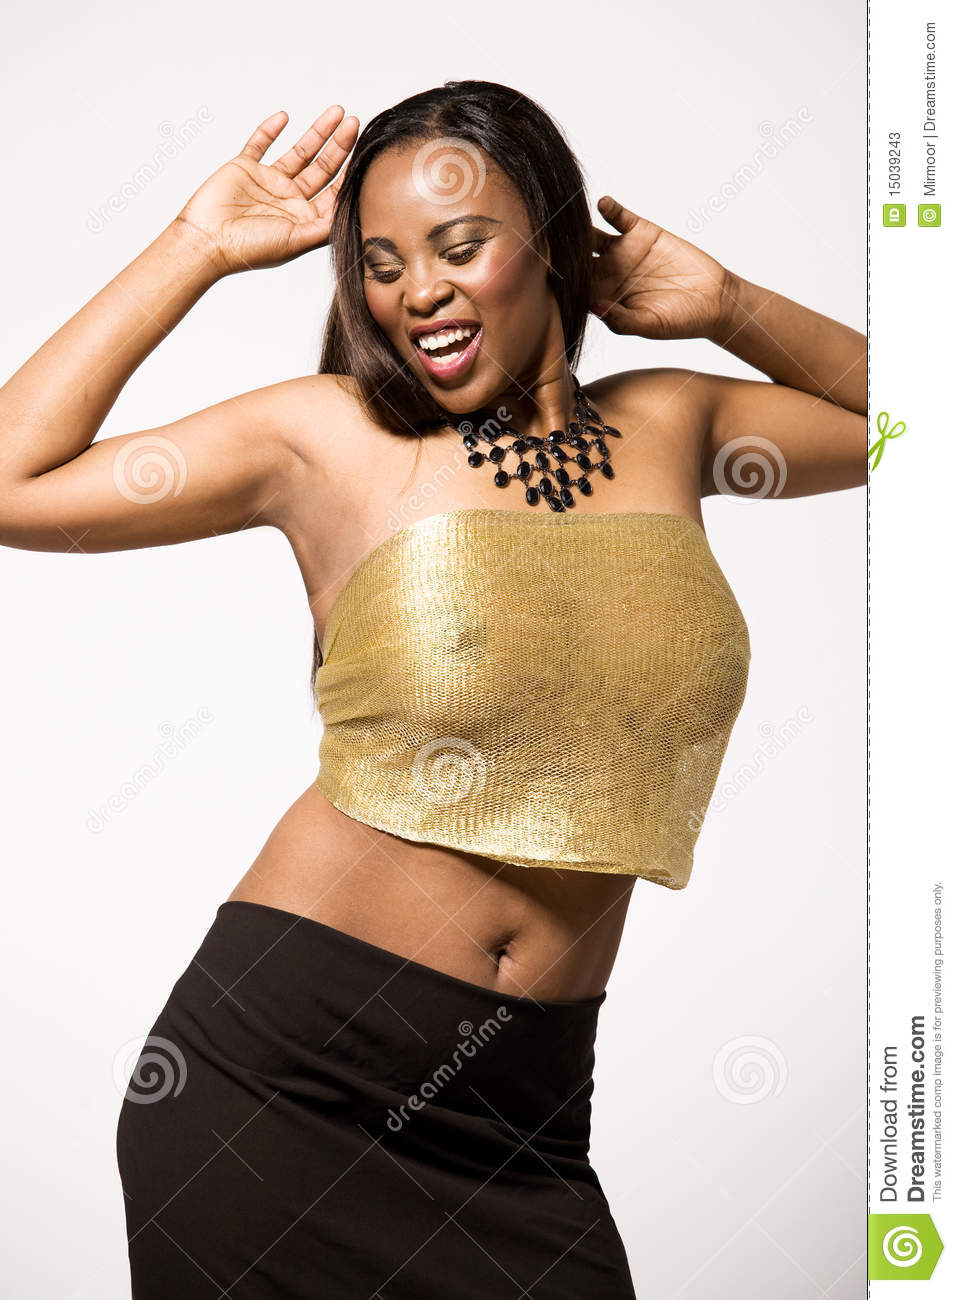 Fashion Model In Black And Gold Dress. Stock Photos - Image: 15039243